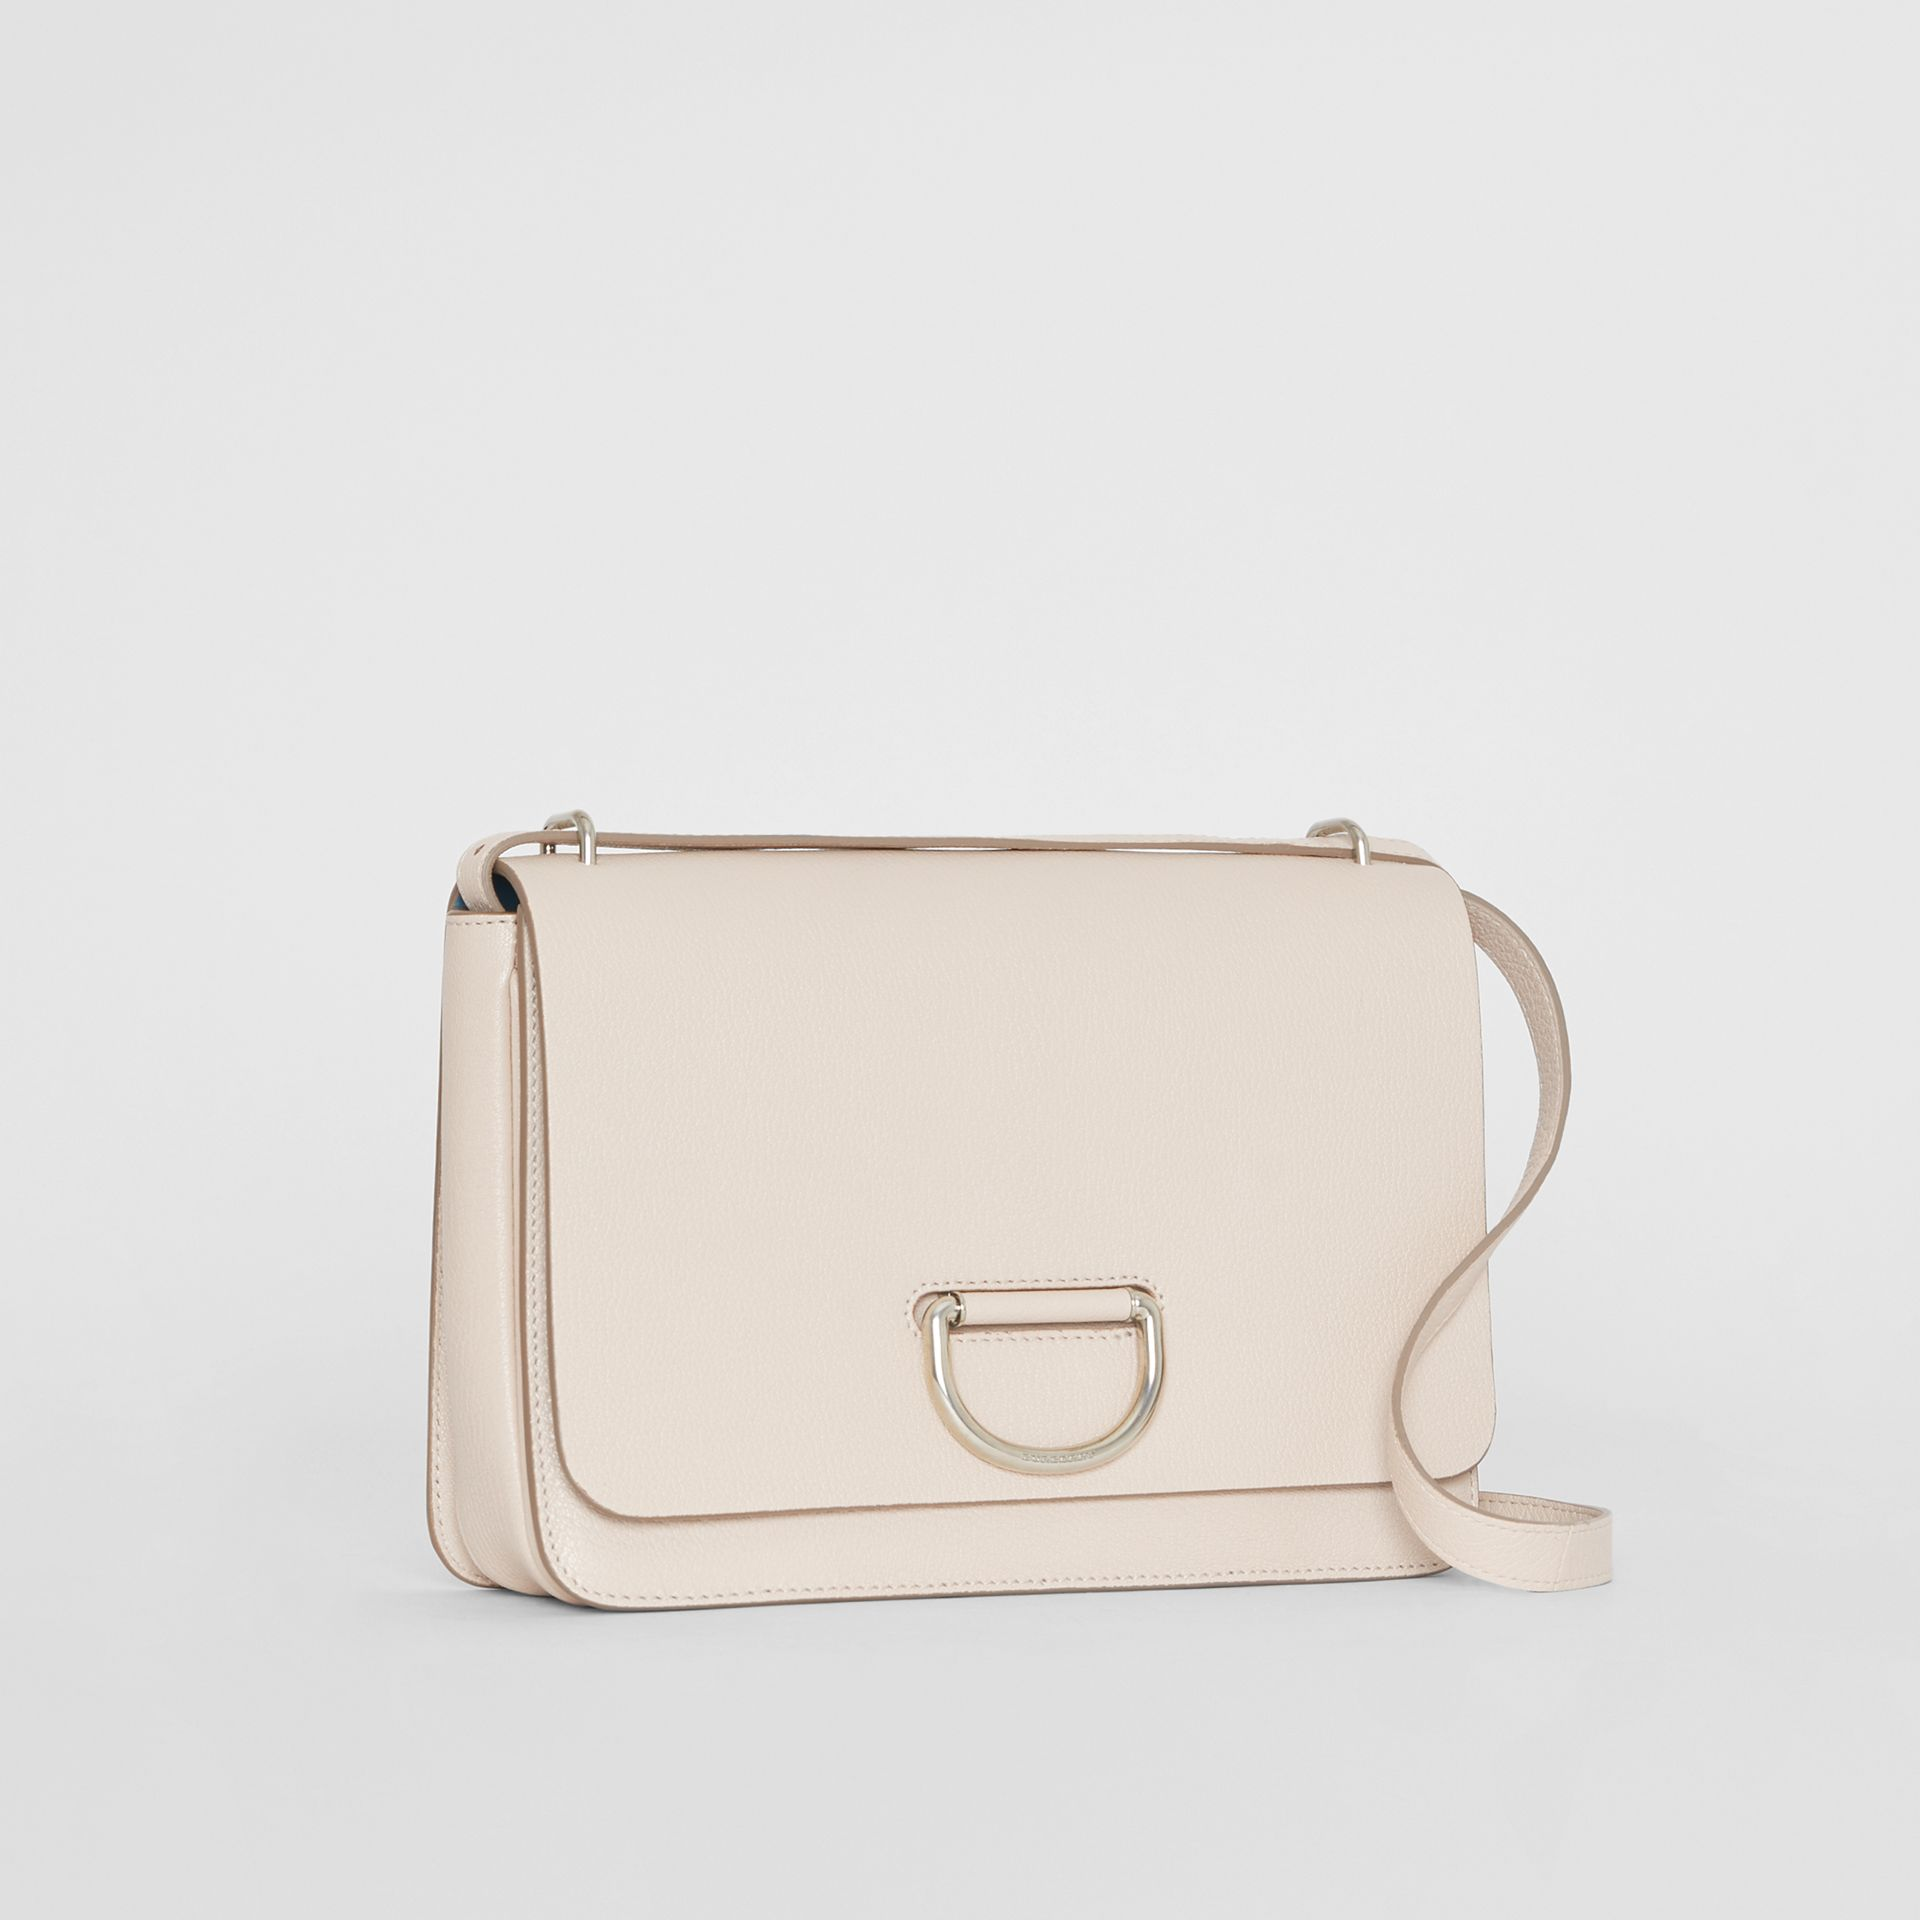 Sac The D-ring moyen en cuir (Stone) - Femme | Burberry - photo de la galerie 6